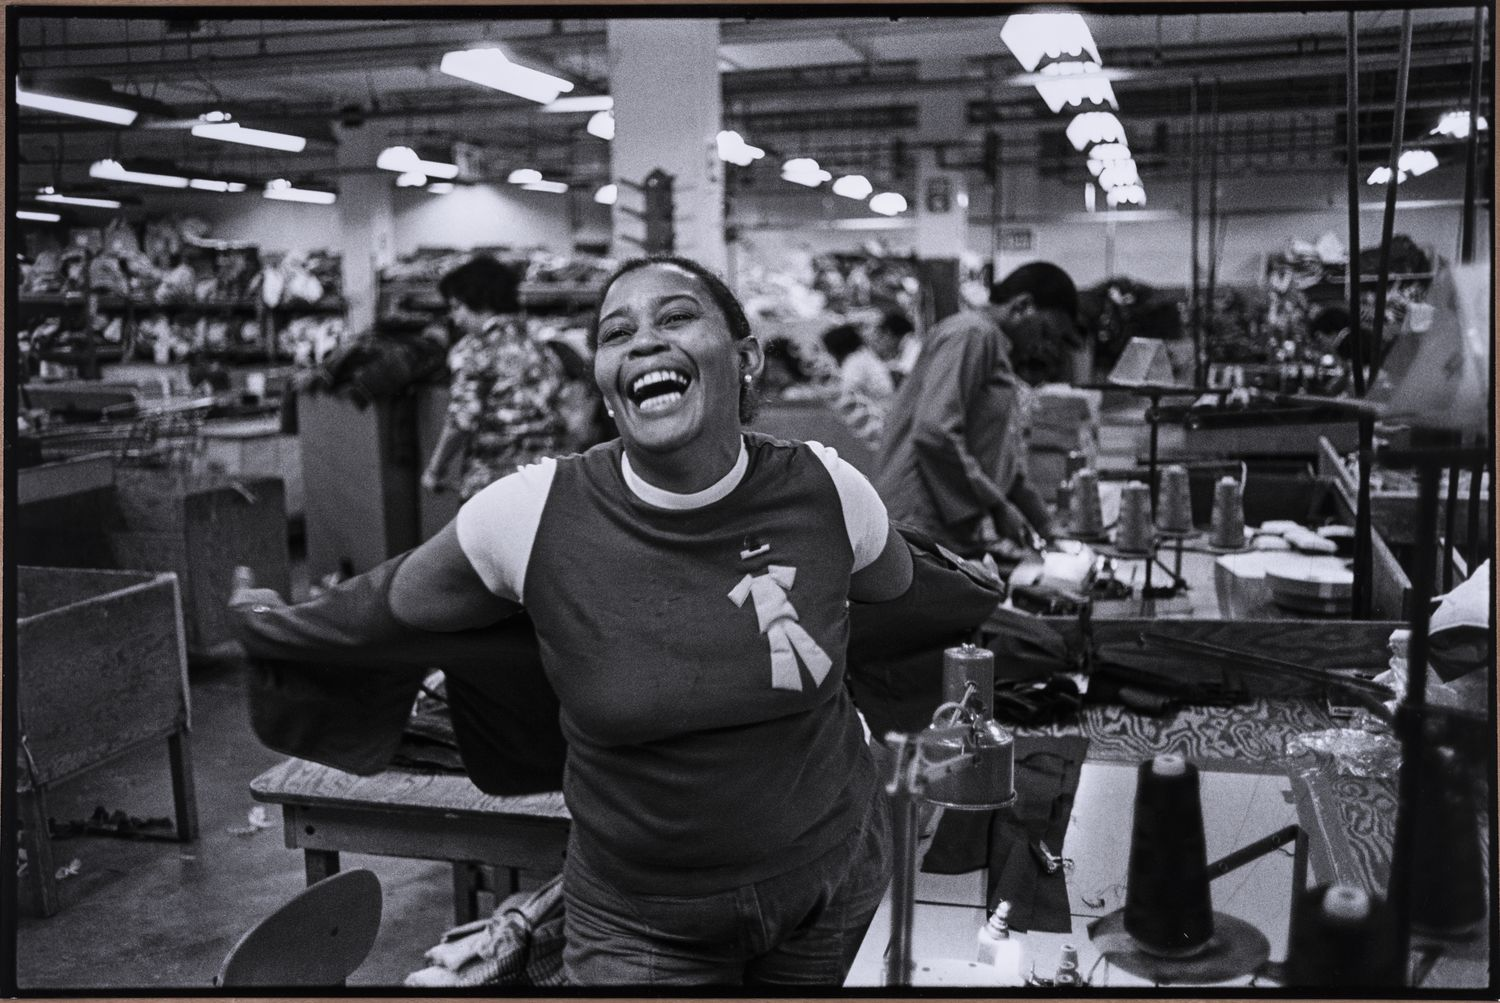 Carrie Mae Weems - Mom at Work (from the